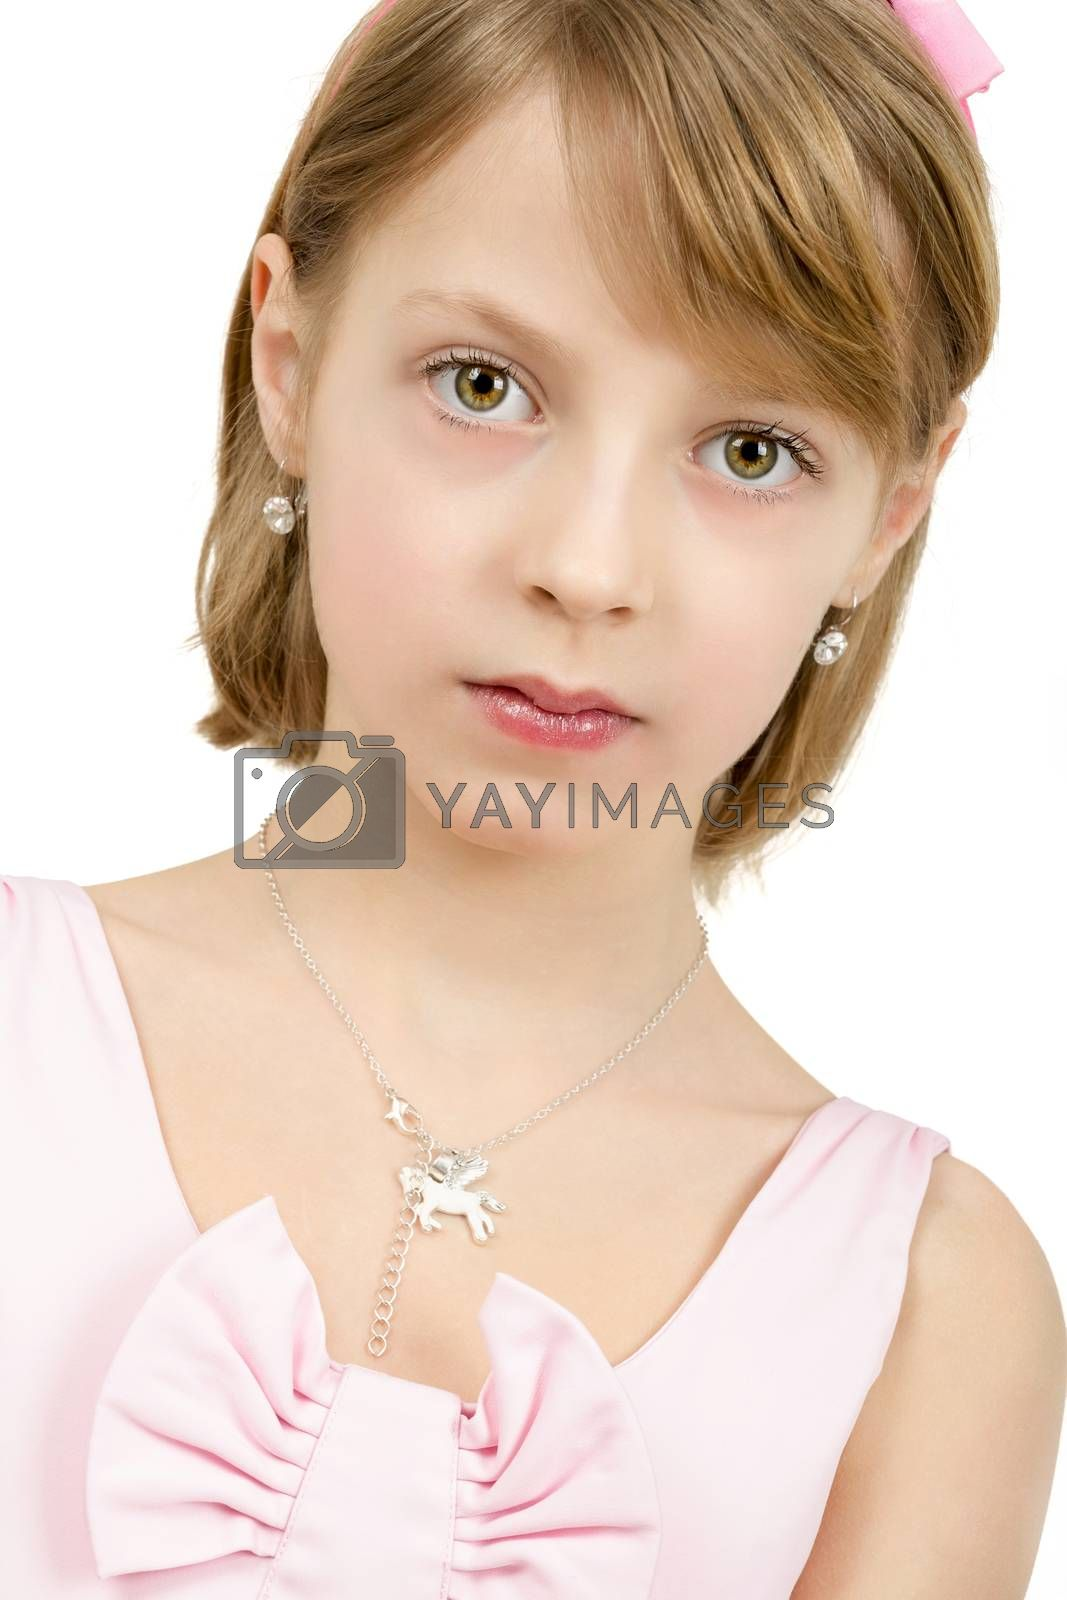 Royalty free image of Studio portrait of young beautiful girl by artush